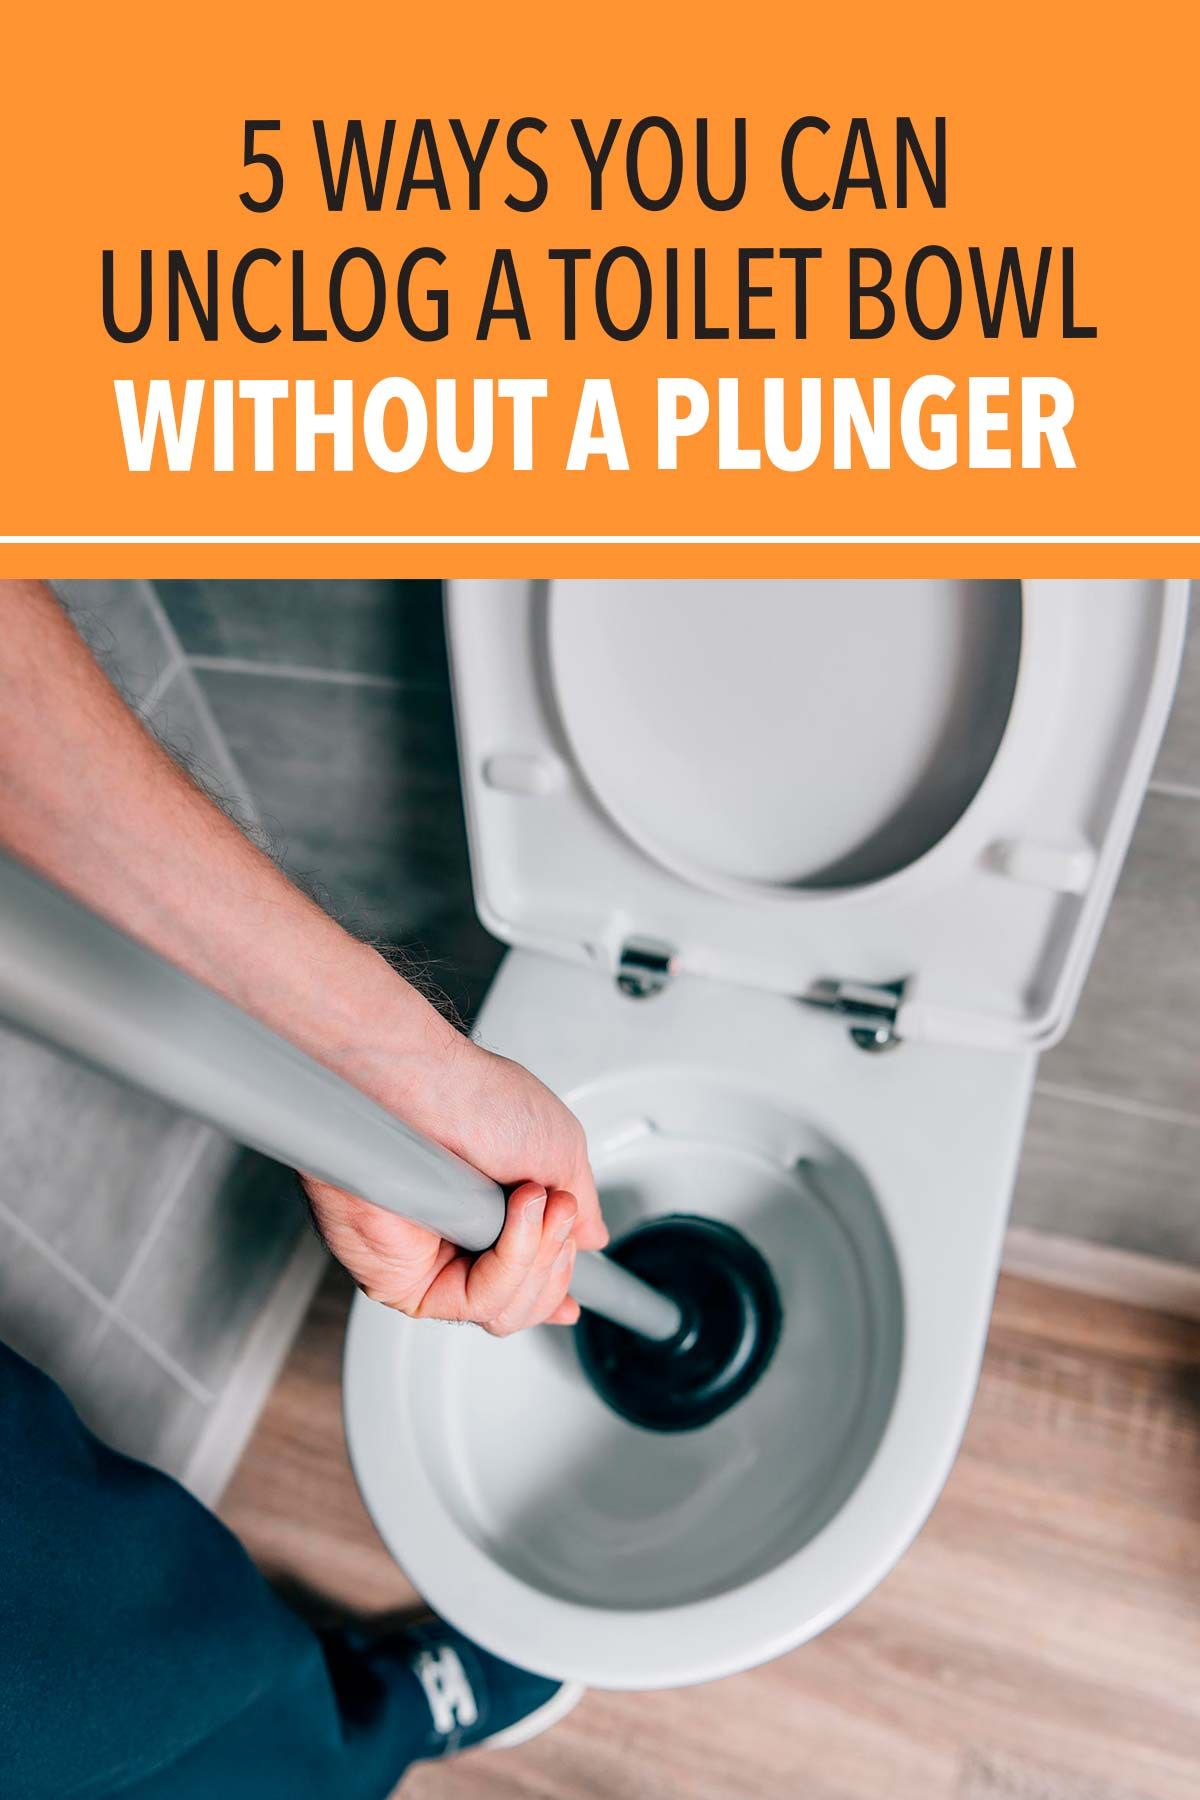 5 Ways You Can Unclog A Toilet Bowl Without A Plunger Unclog Clogged Toilet Plunger